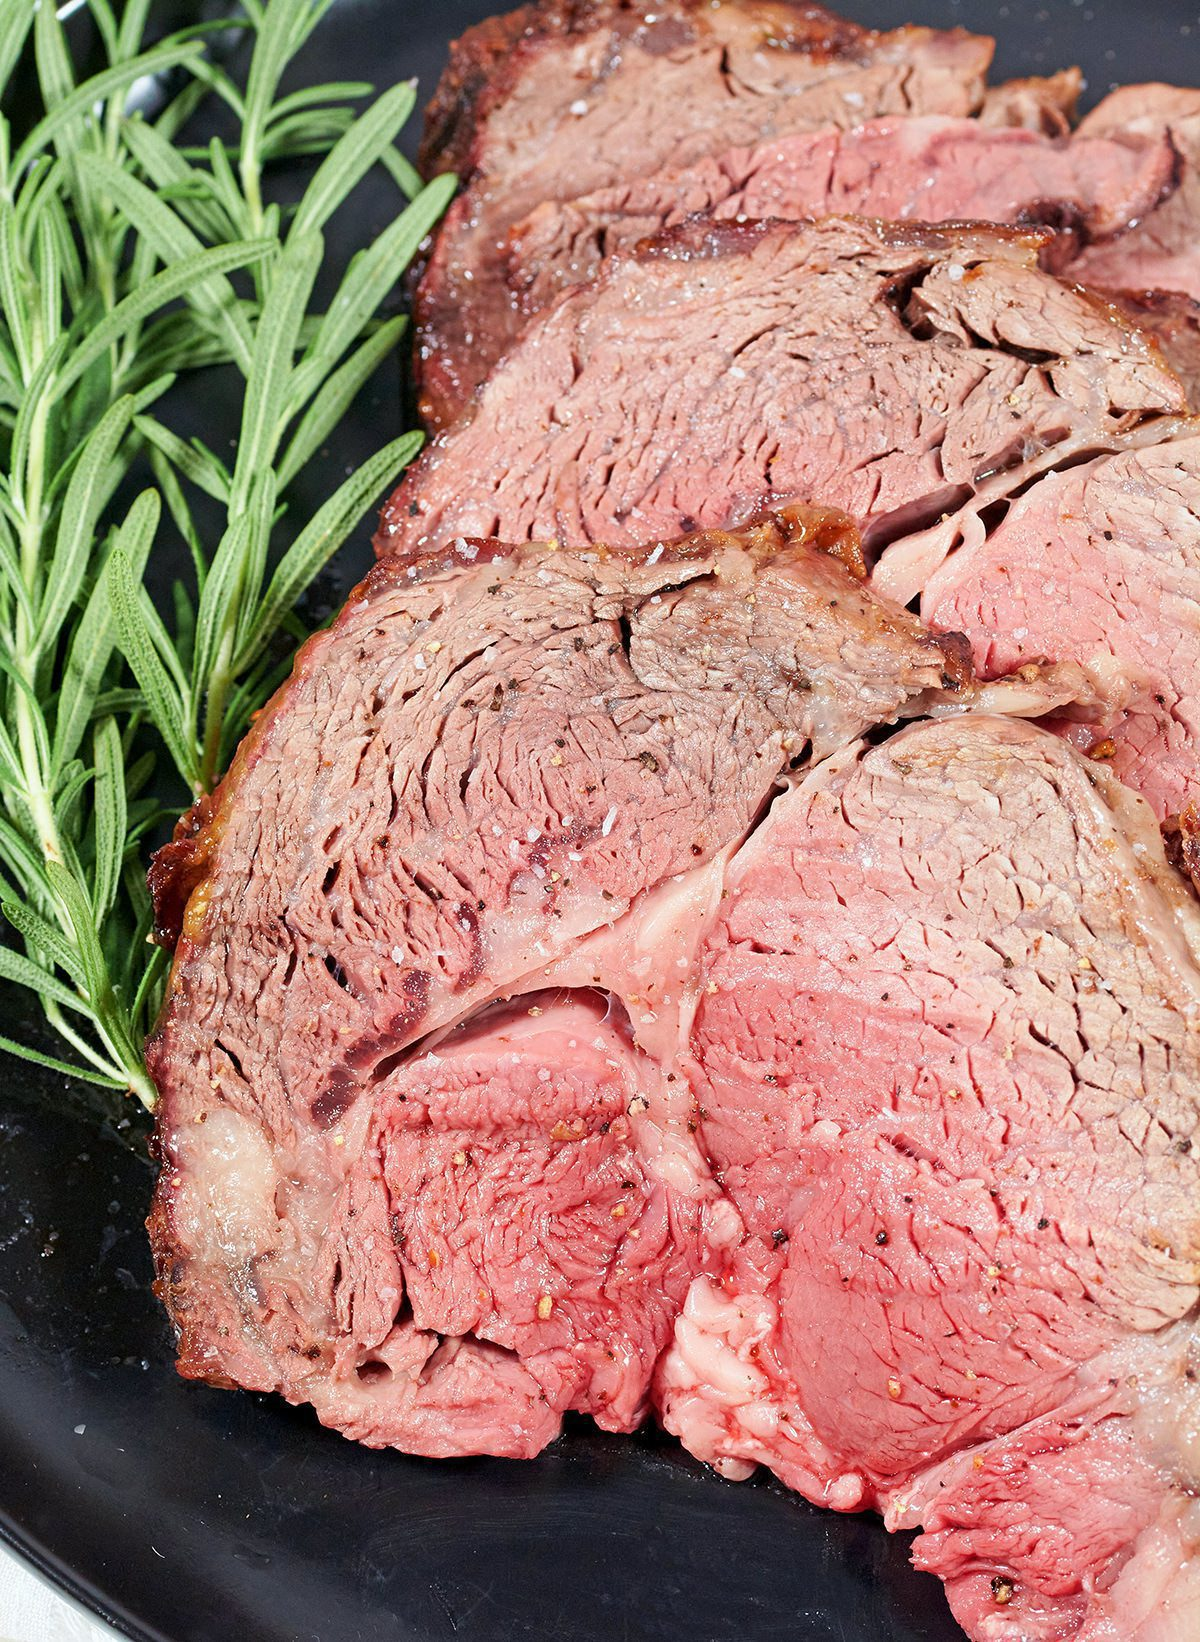 Photo of cooked prime rib slices on a black plate